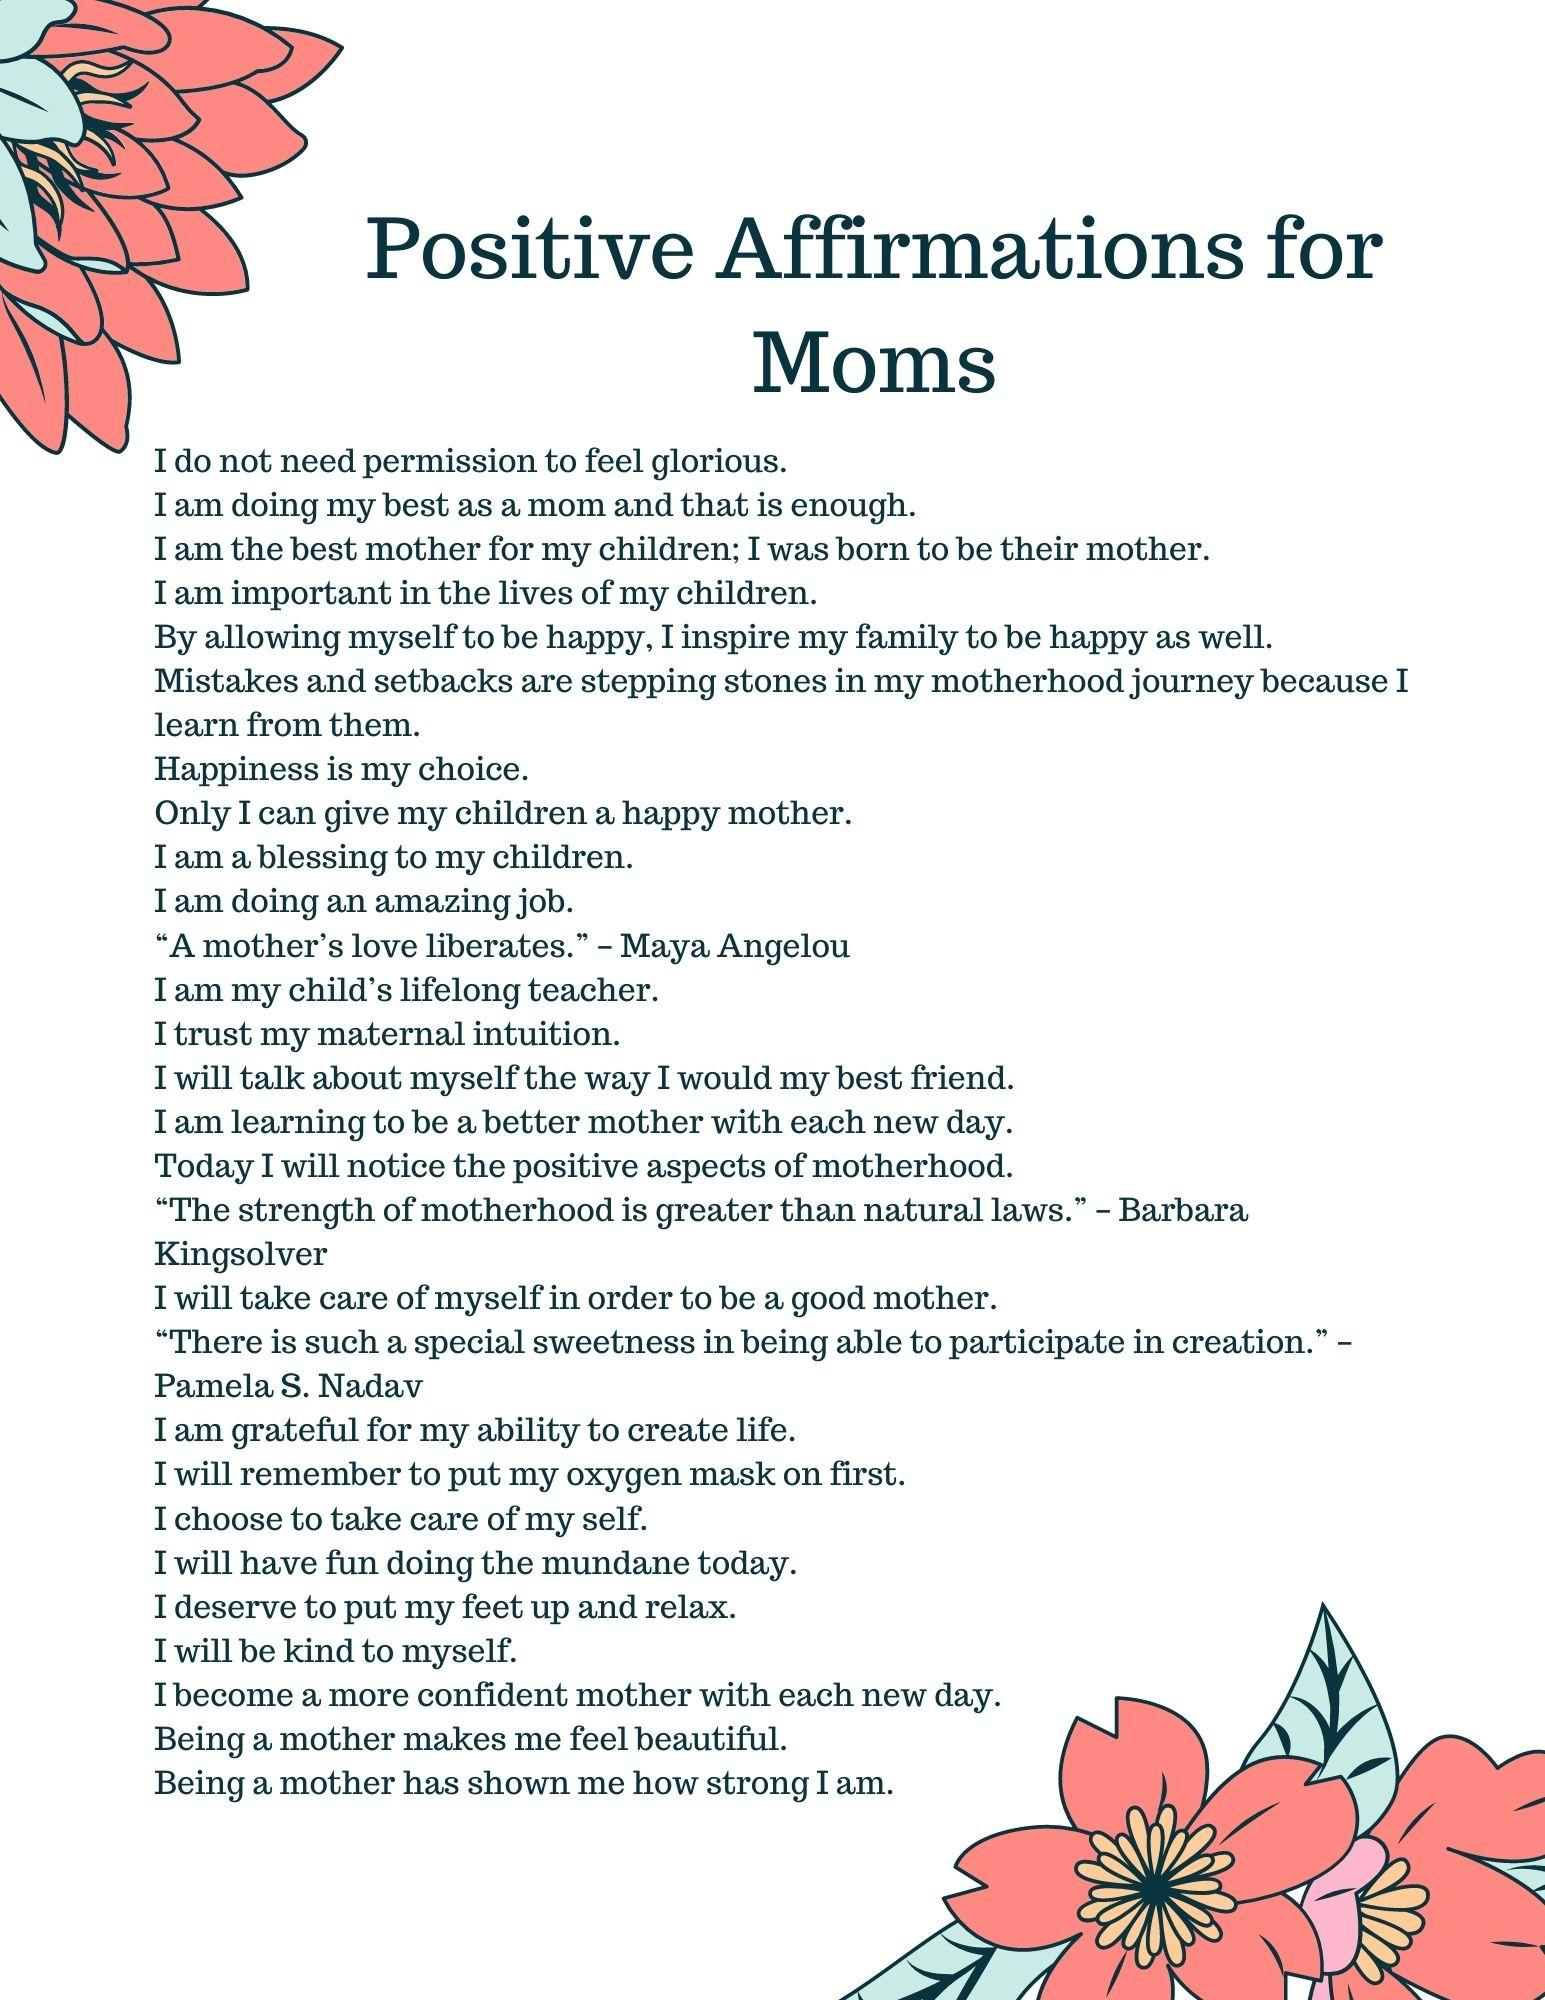 Positive Affirmations for Moms pg 1